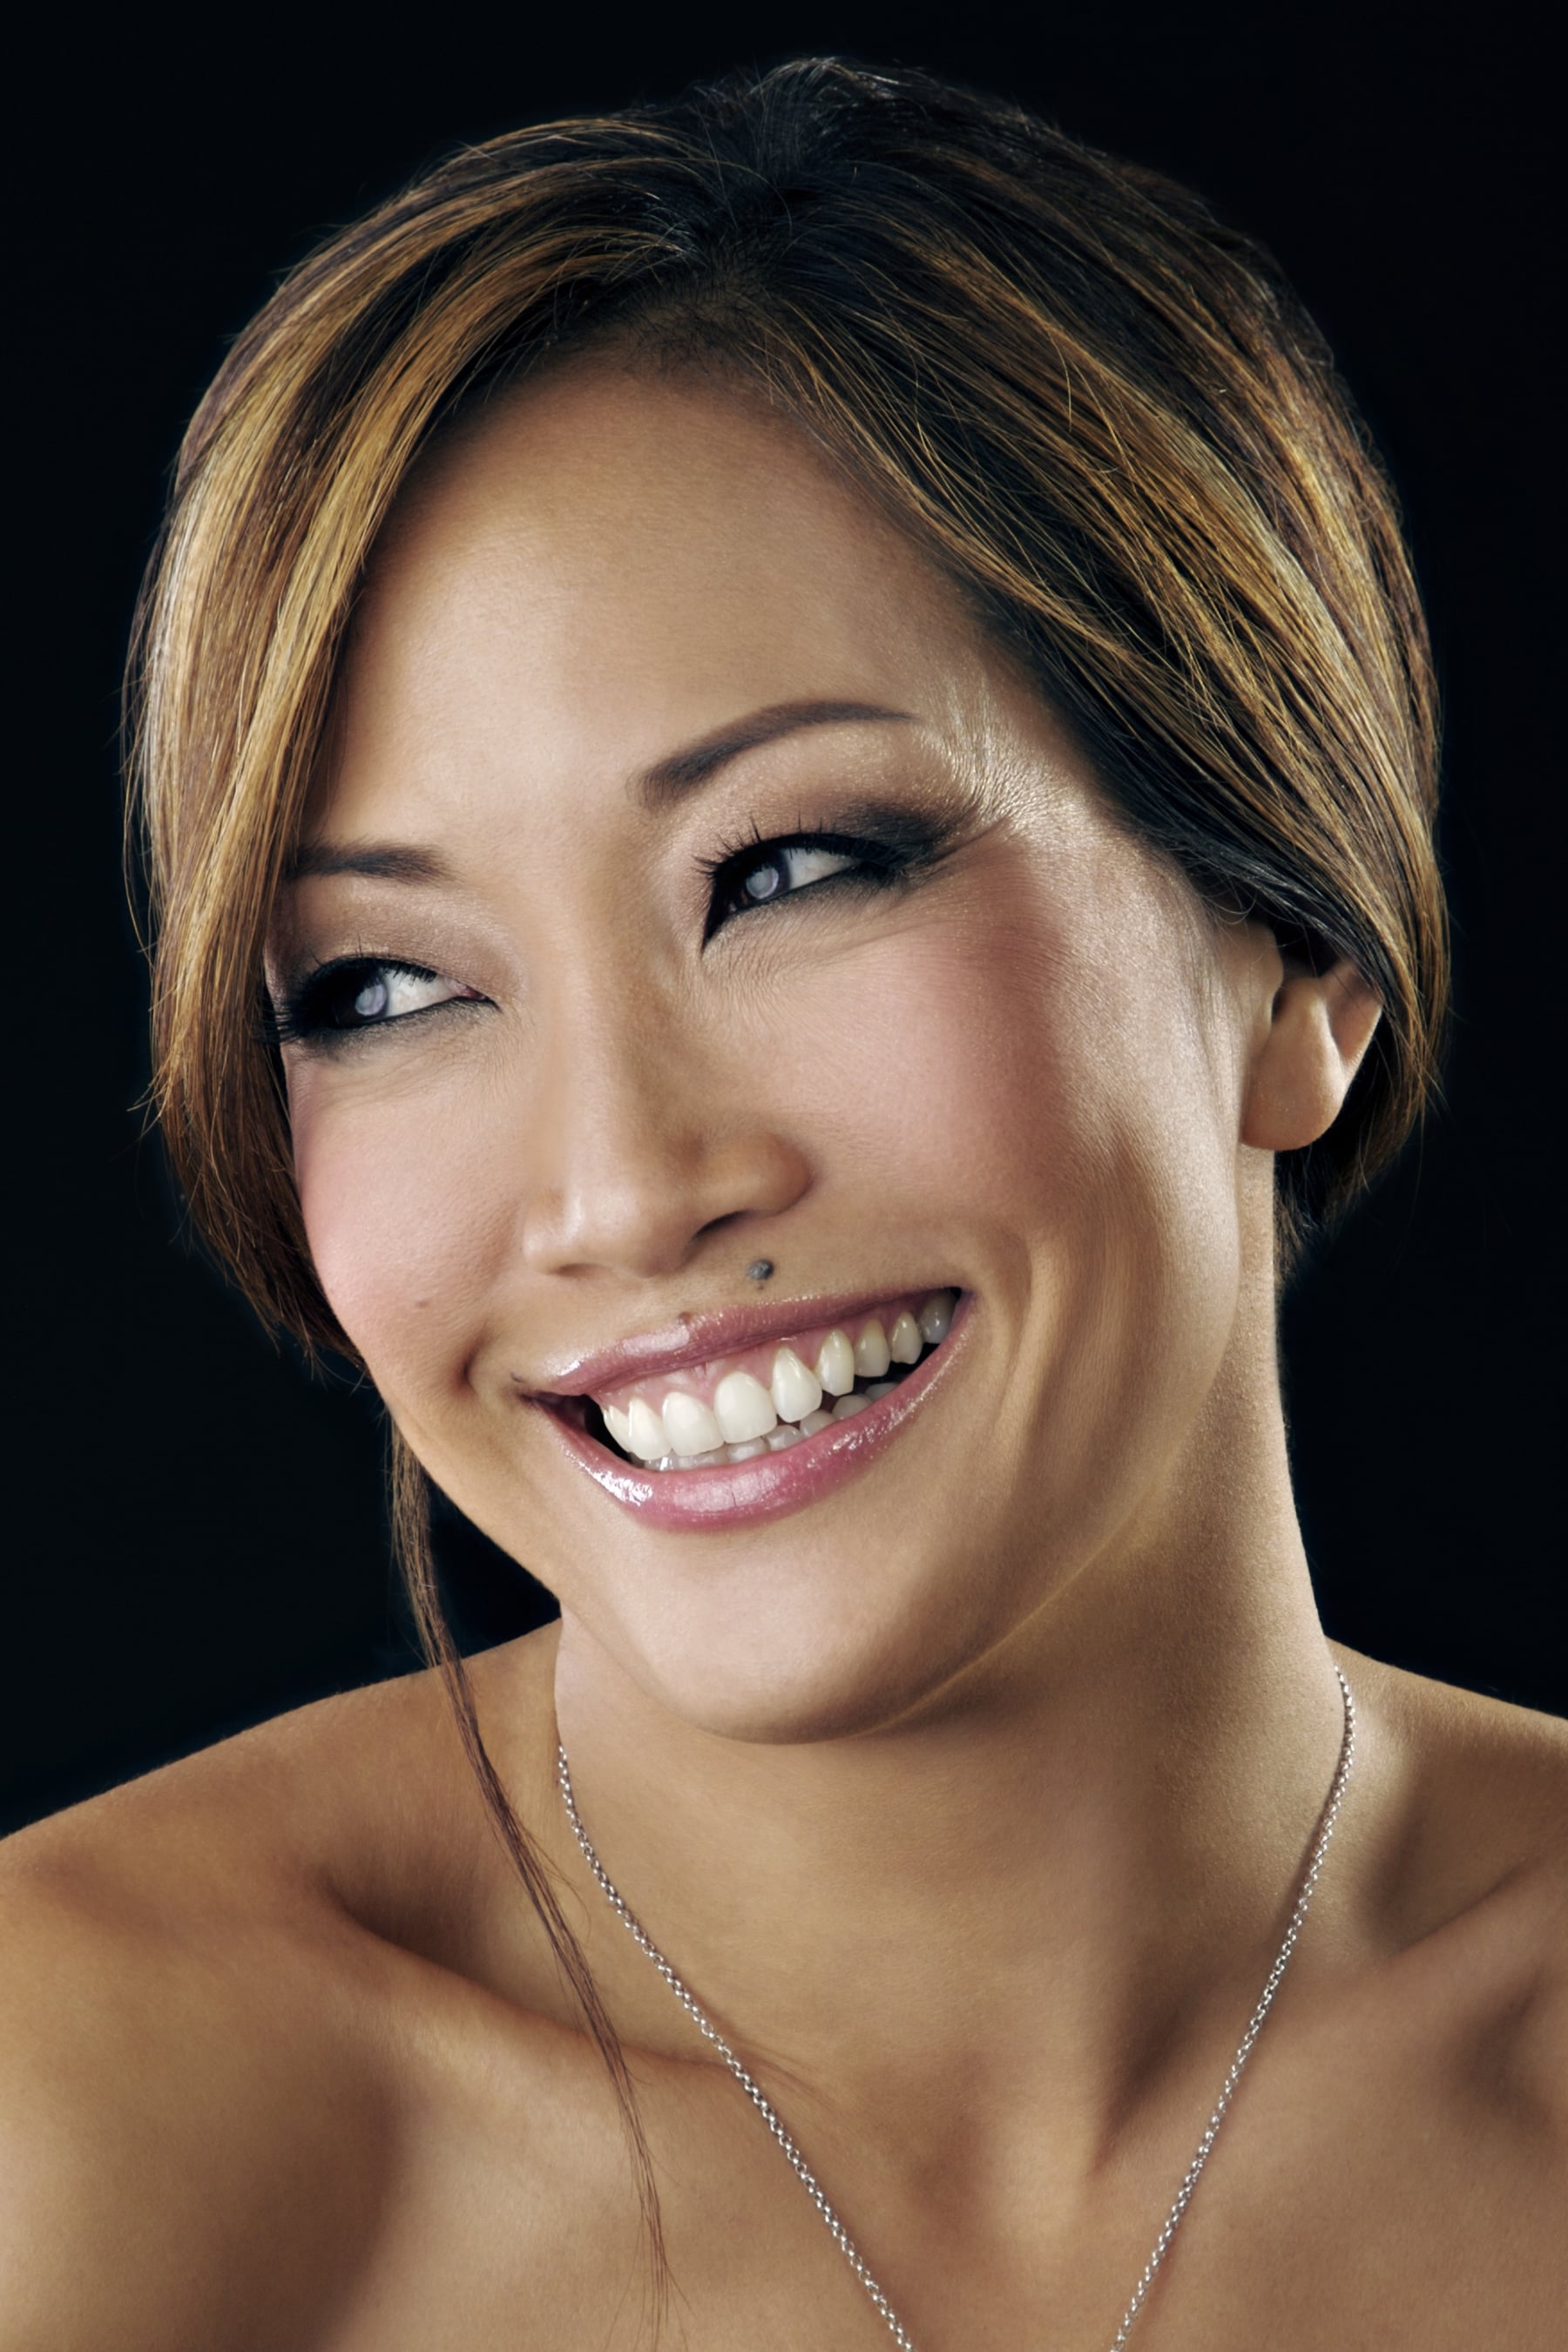 Carrie Ann Inaba / Herself - Judge